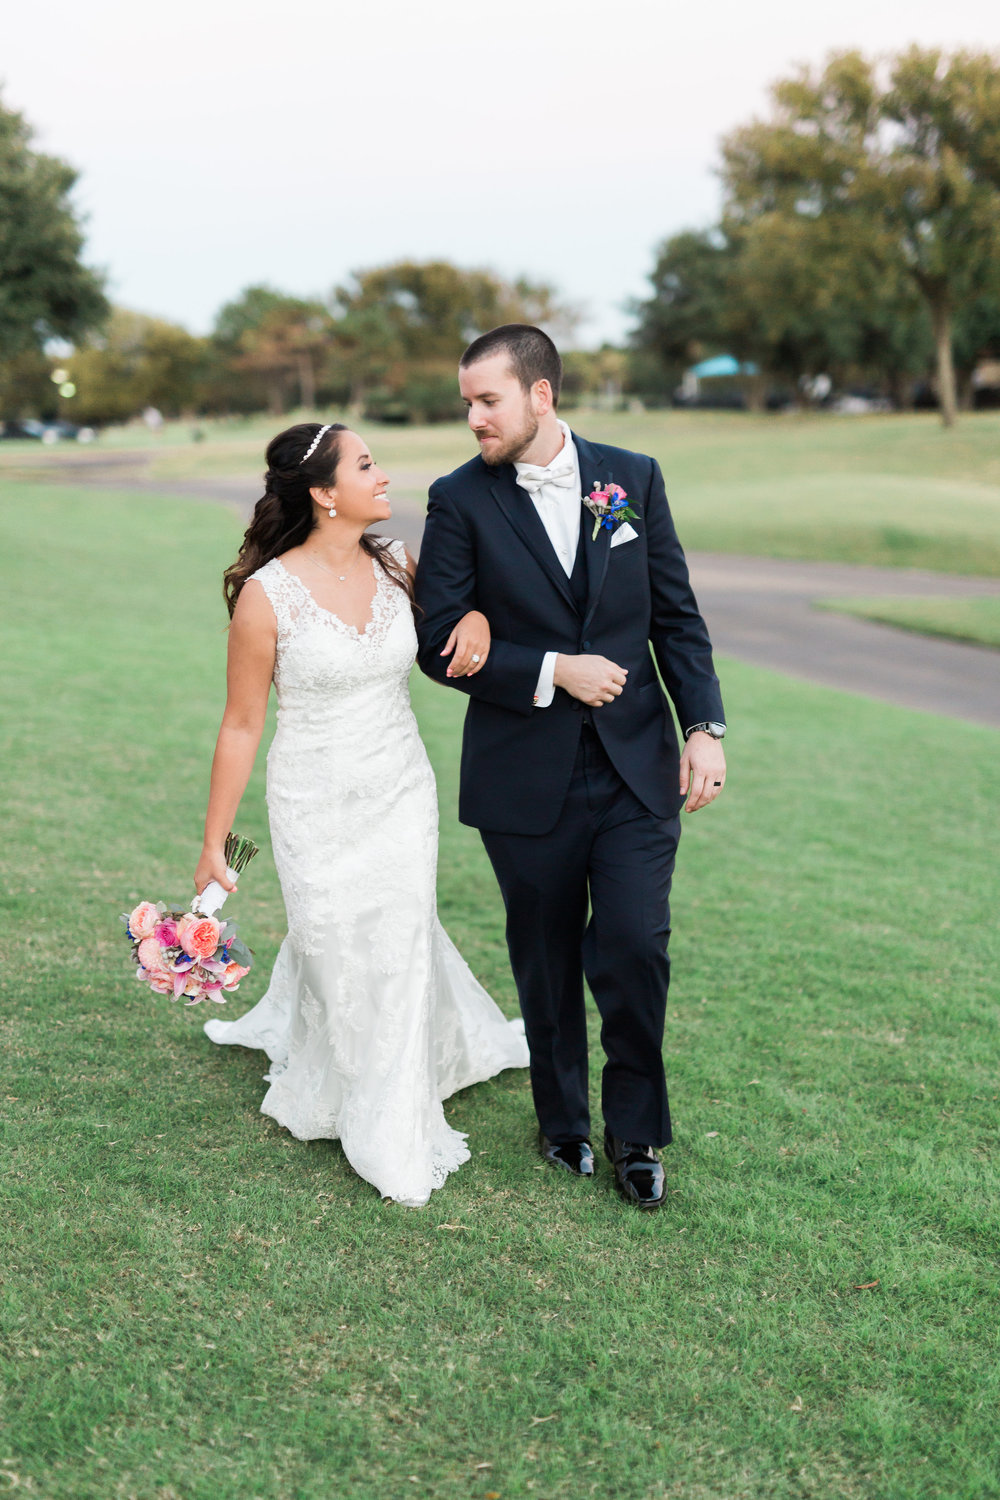 Cynthia + Stephen - Stonebridge Ranch